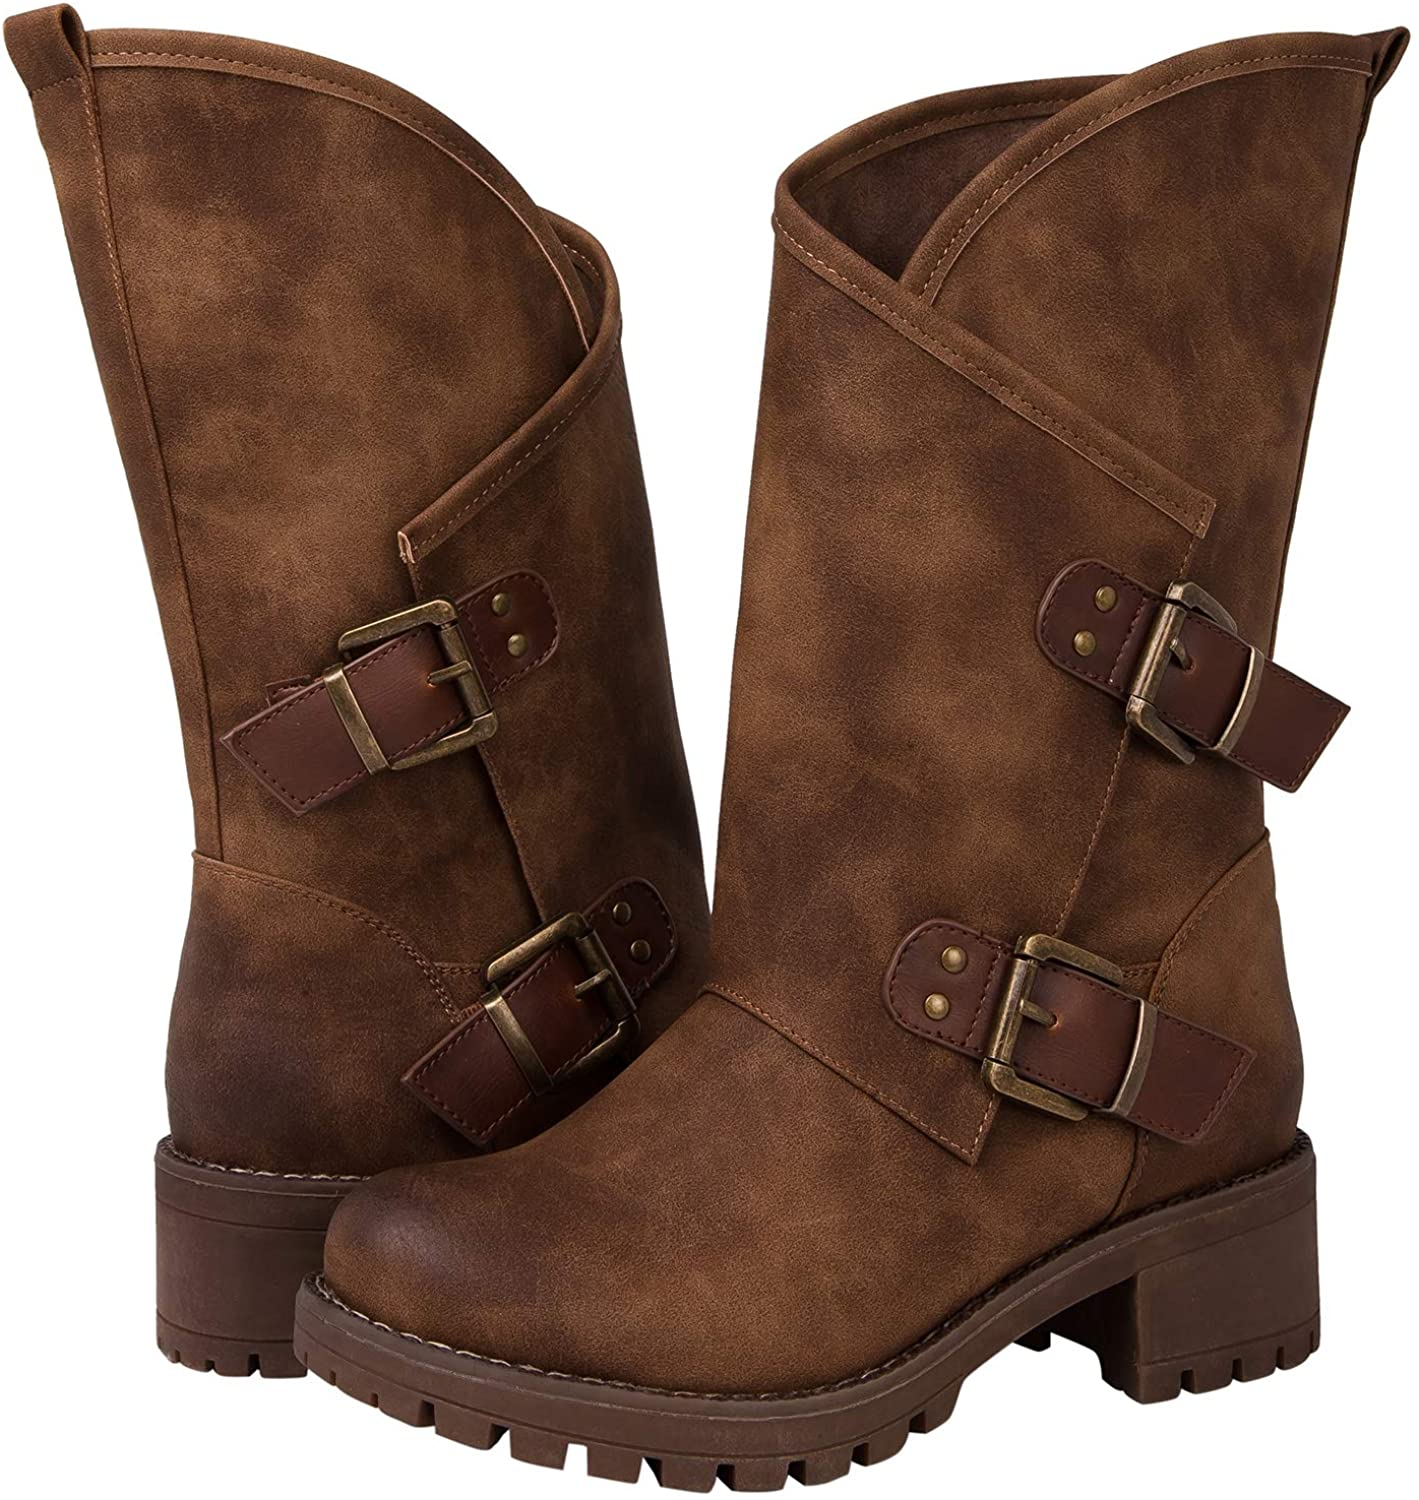 GLOBALWIN Women's 18YY01 Fashion Boots